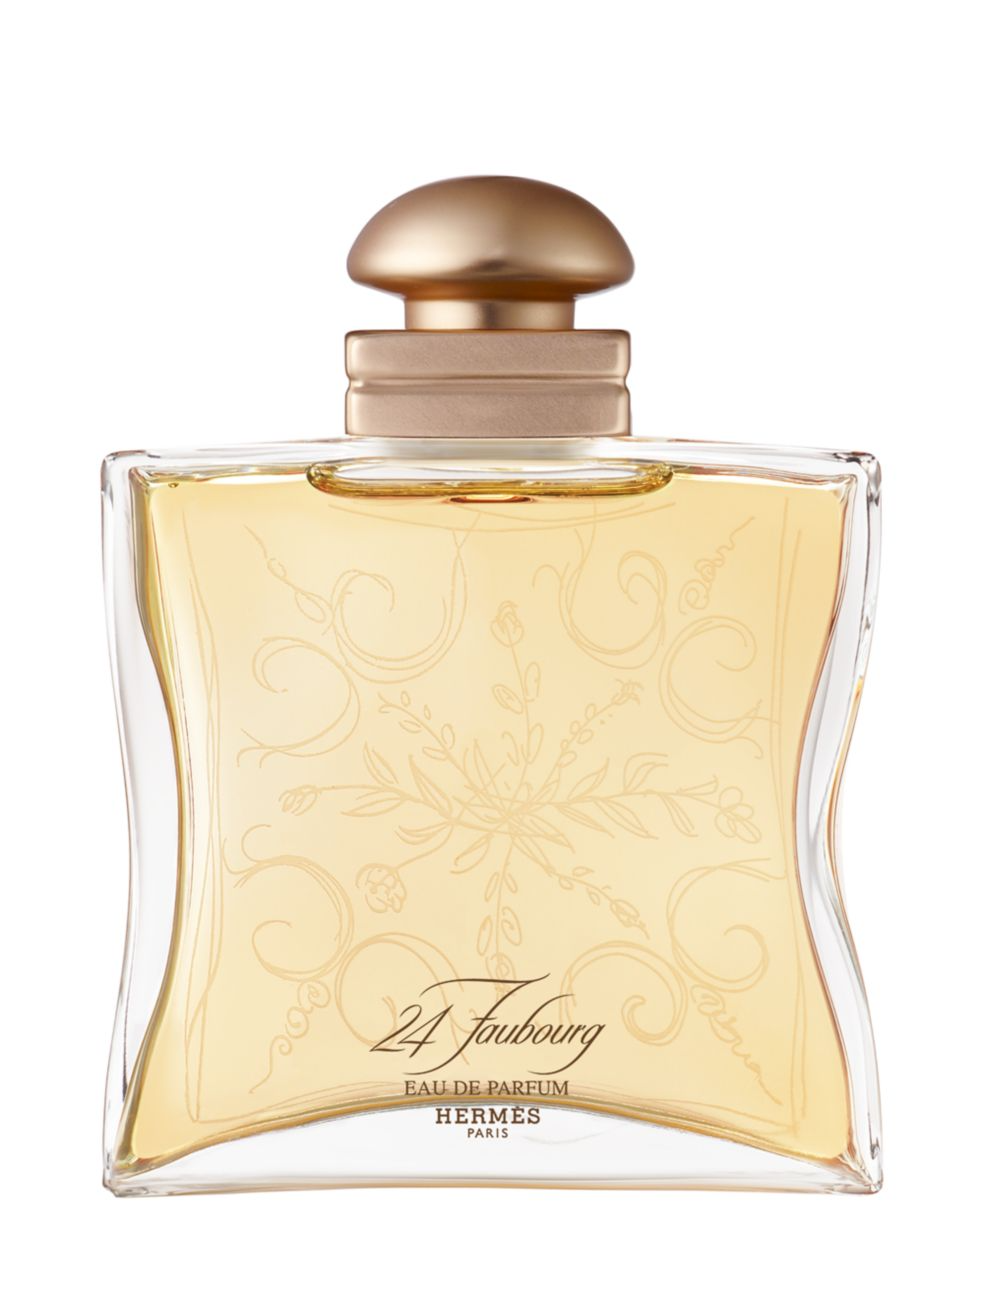 24 FAUBOURG HERMES 1.6 EDP SP